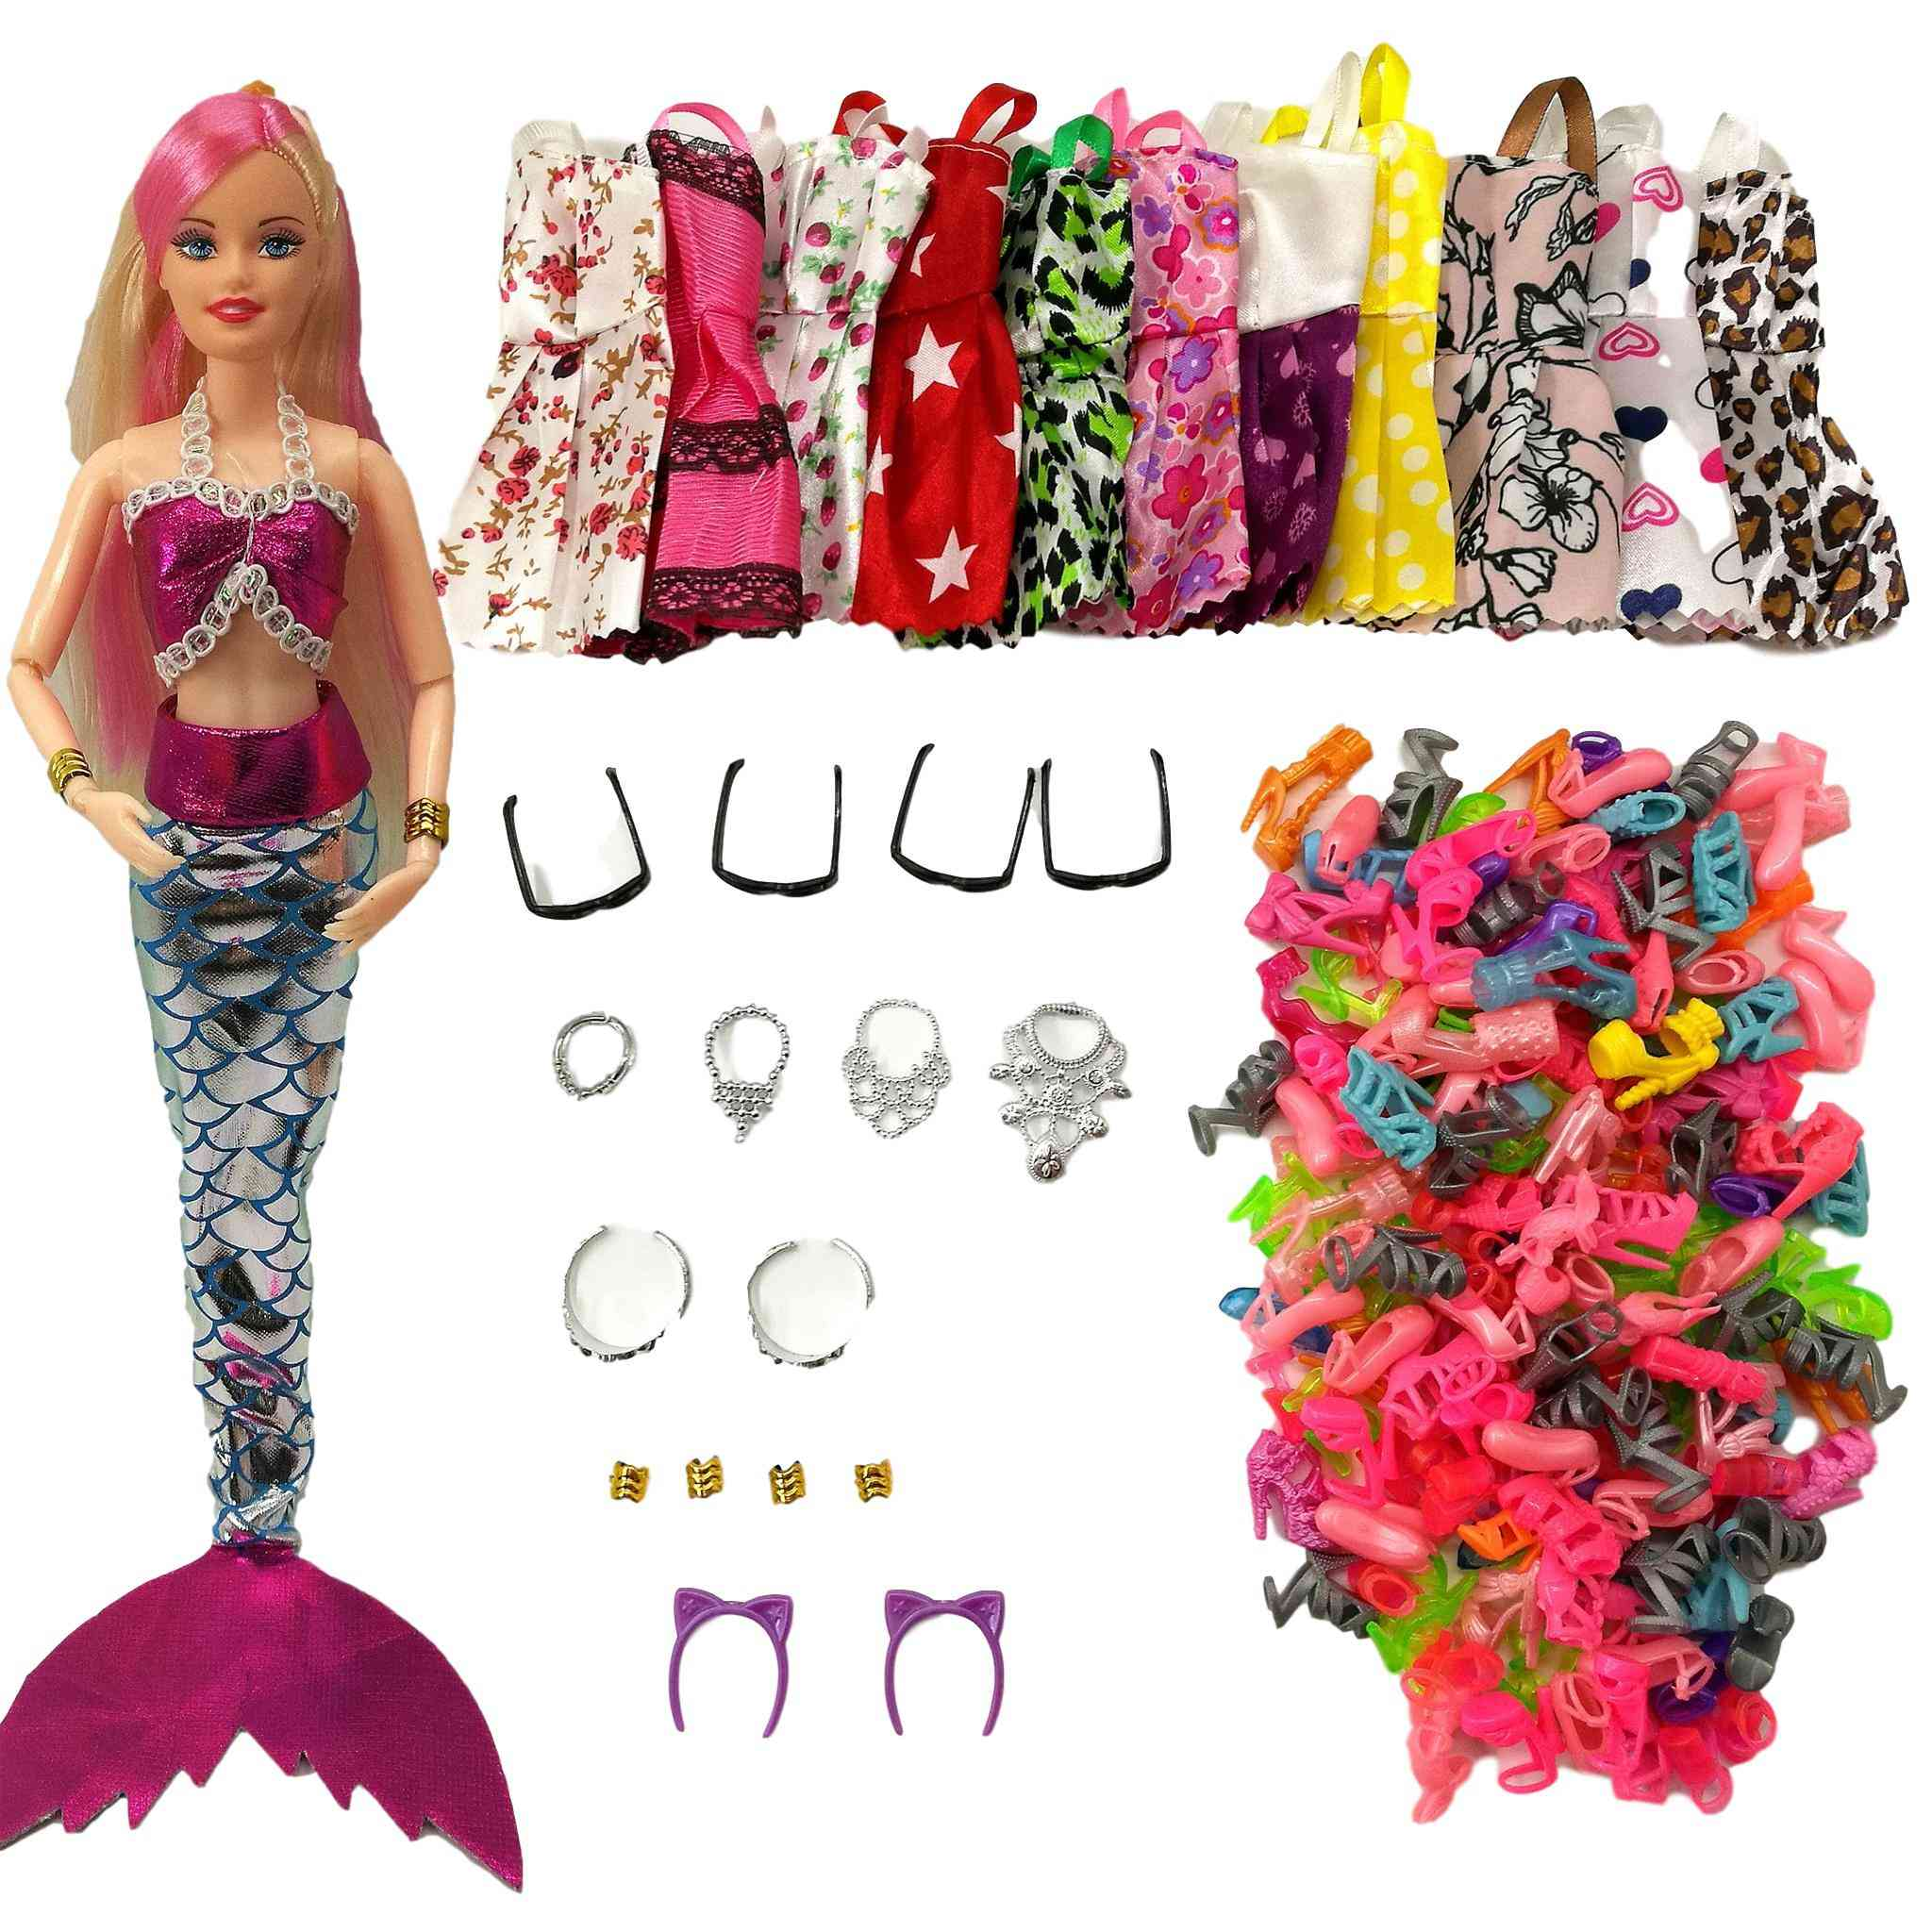 Baby Doll Accessories For And Games